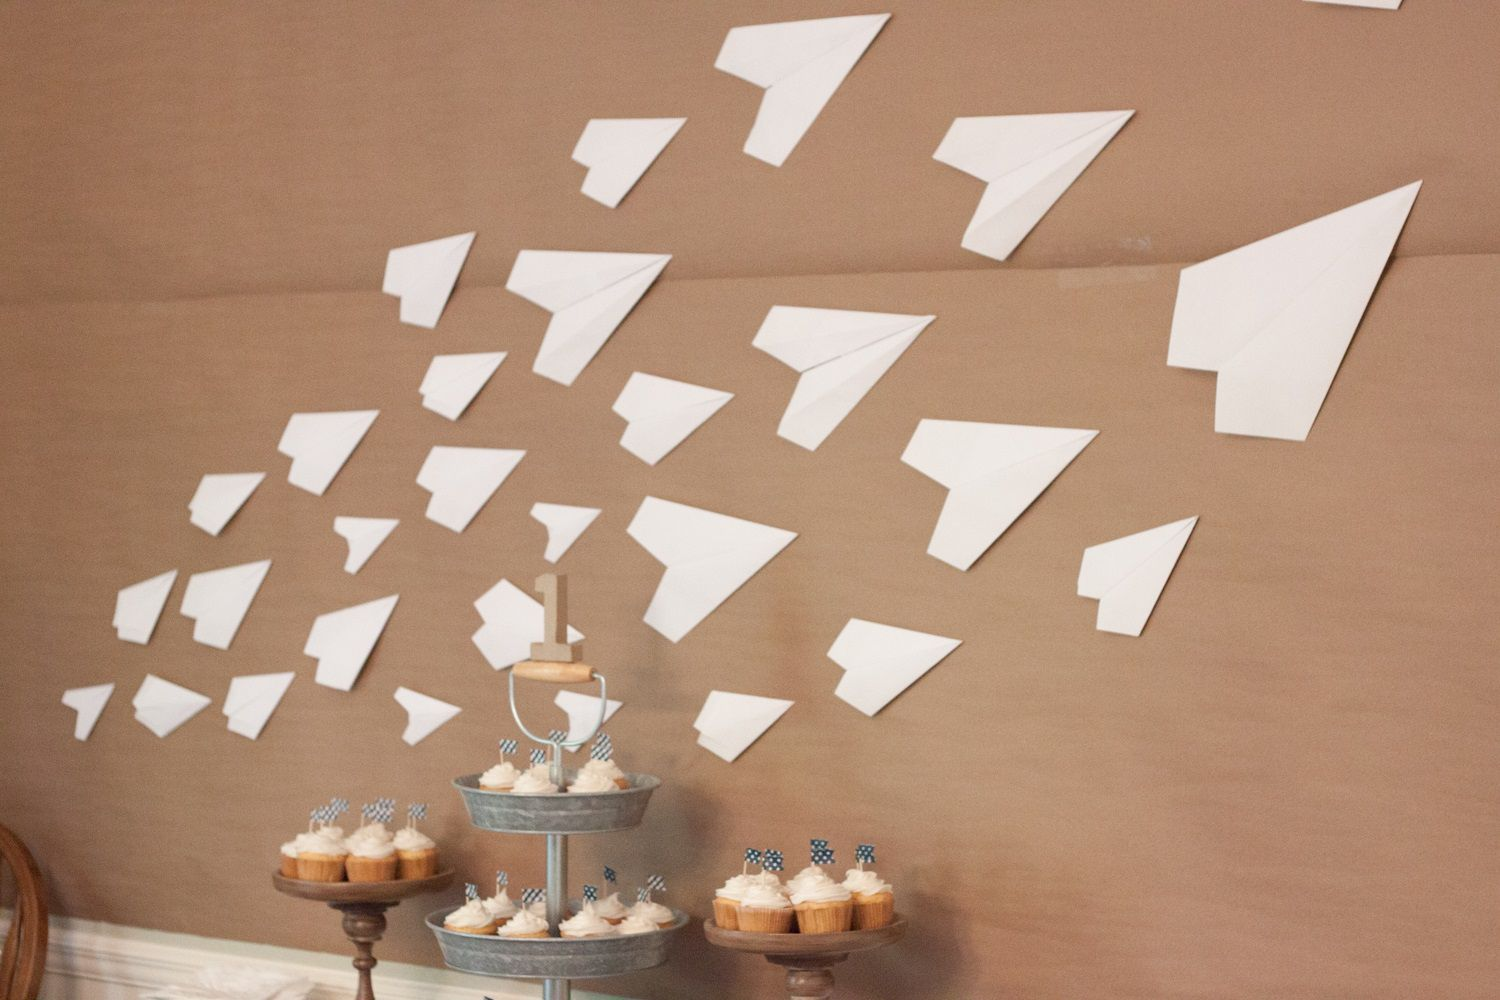 008 Magnificent Free Paper Airplane Design Printable Template Inspiration  Designs-printable TemplatesFull